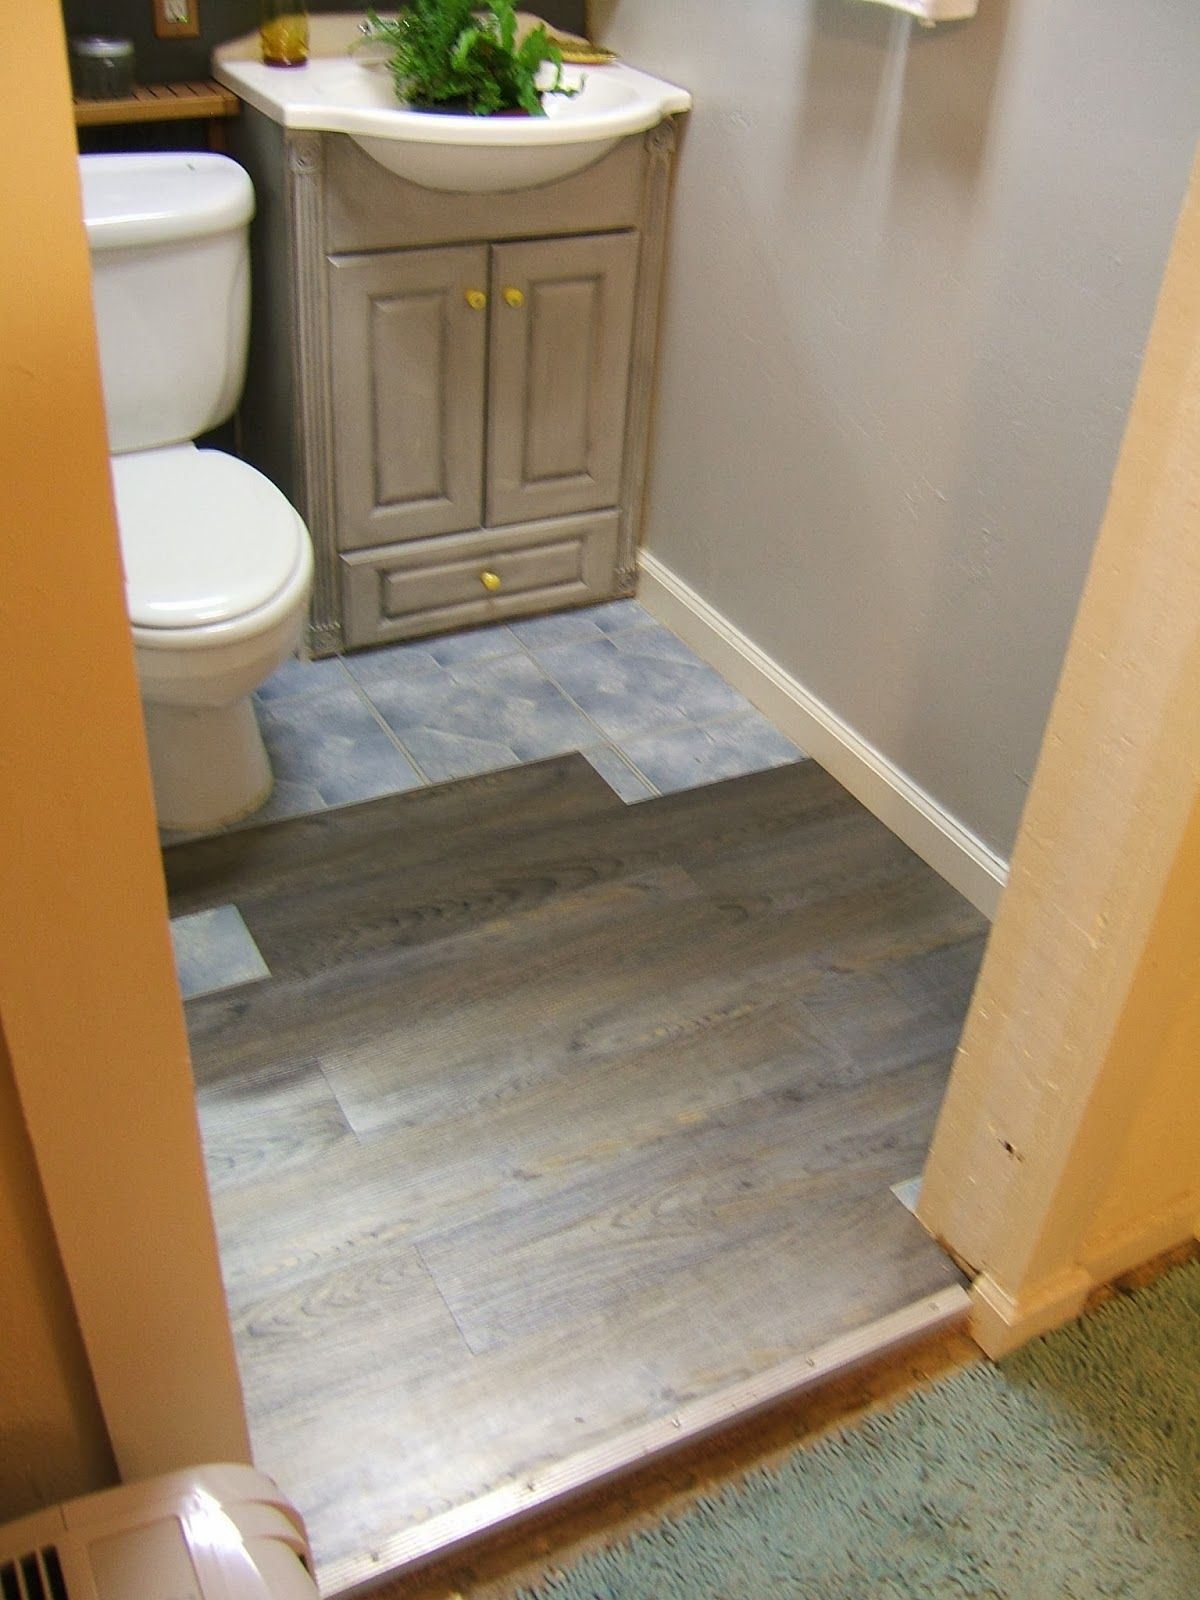 Peel And Stick Laminate Flooring novalis peel and stick vinyl planks feedback Flooring From Nine Red How To Cut Tile To Fit Around Toilet Easiest Way